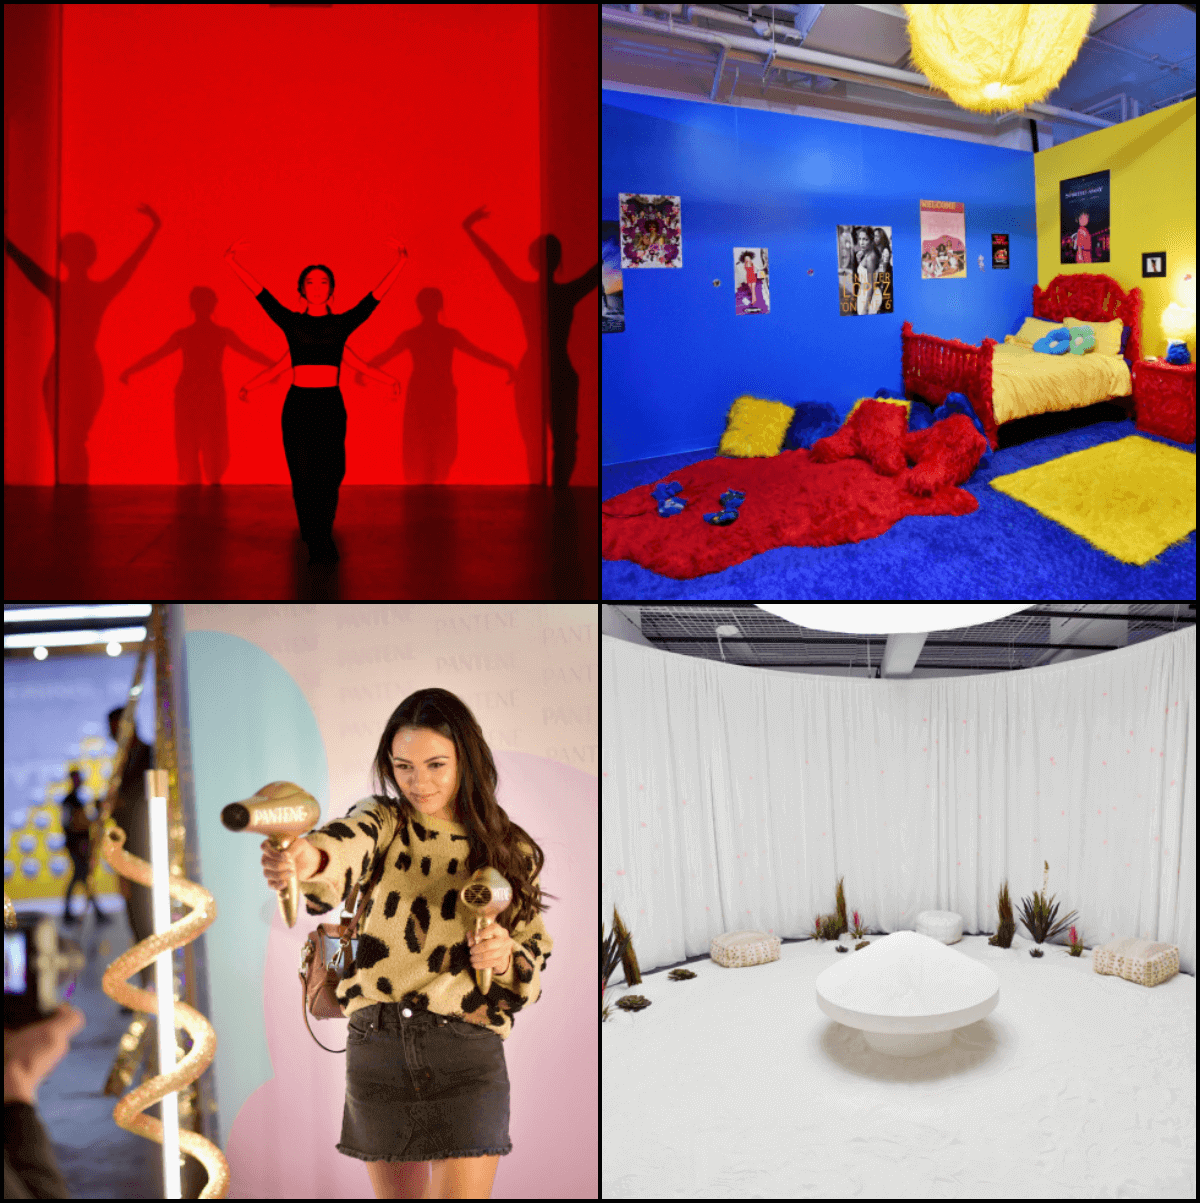 images from the 29 rooms collage